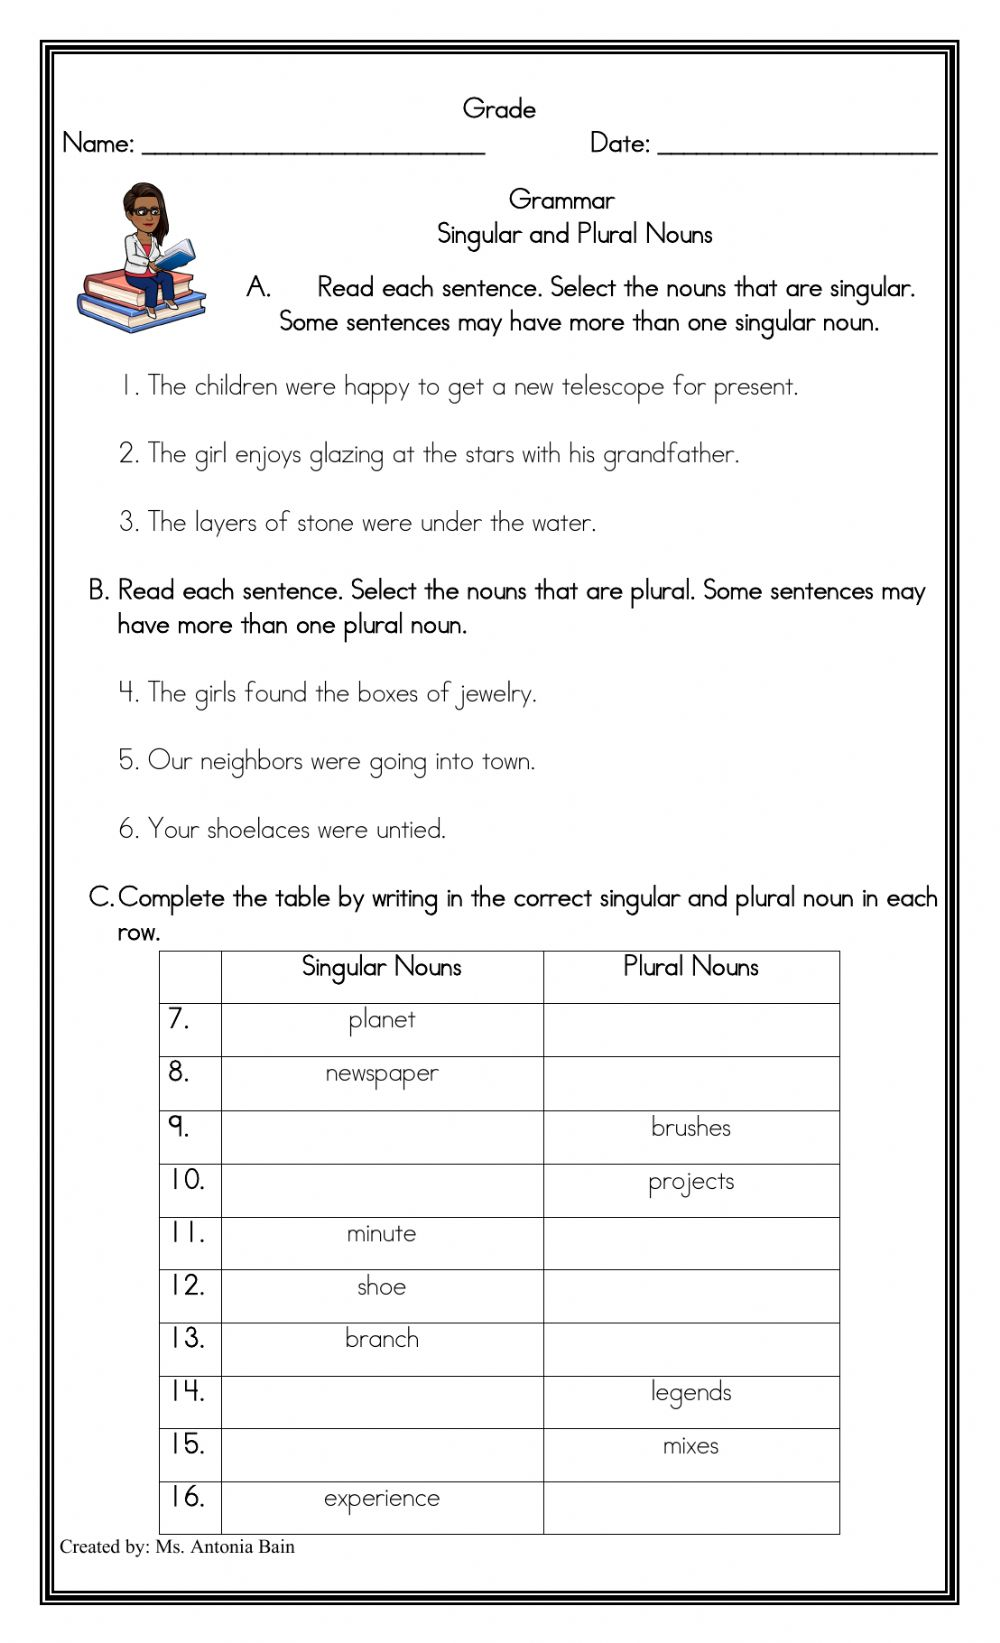 Singular And Plural Nouns Exercises With Answers Singular Plural Nouns Quiz  – Cute766